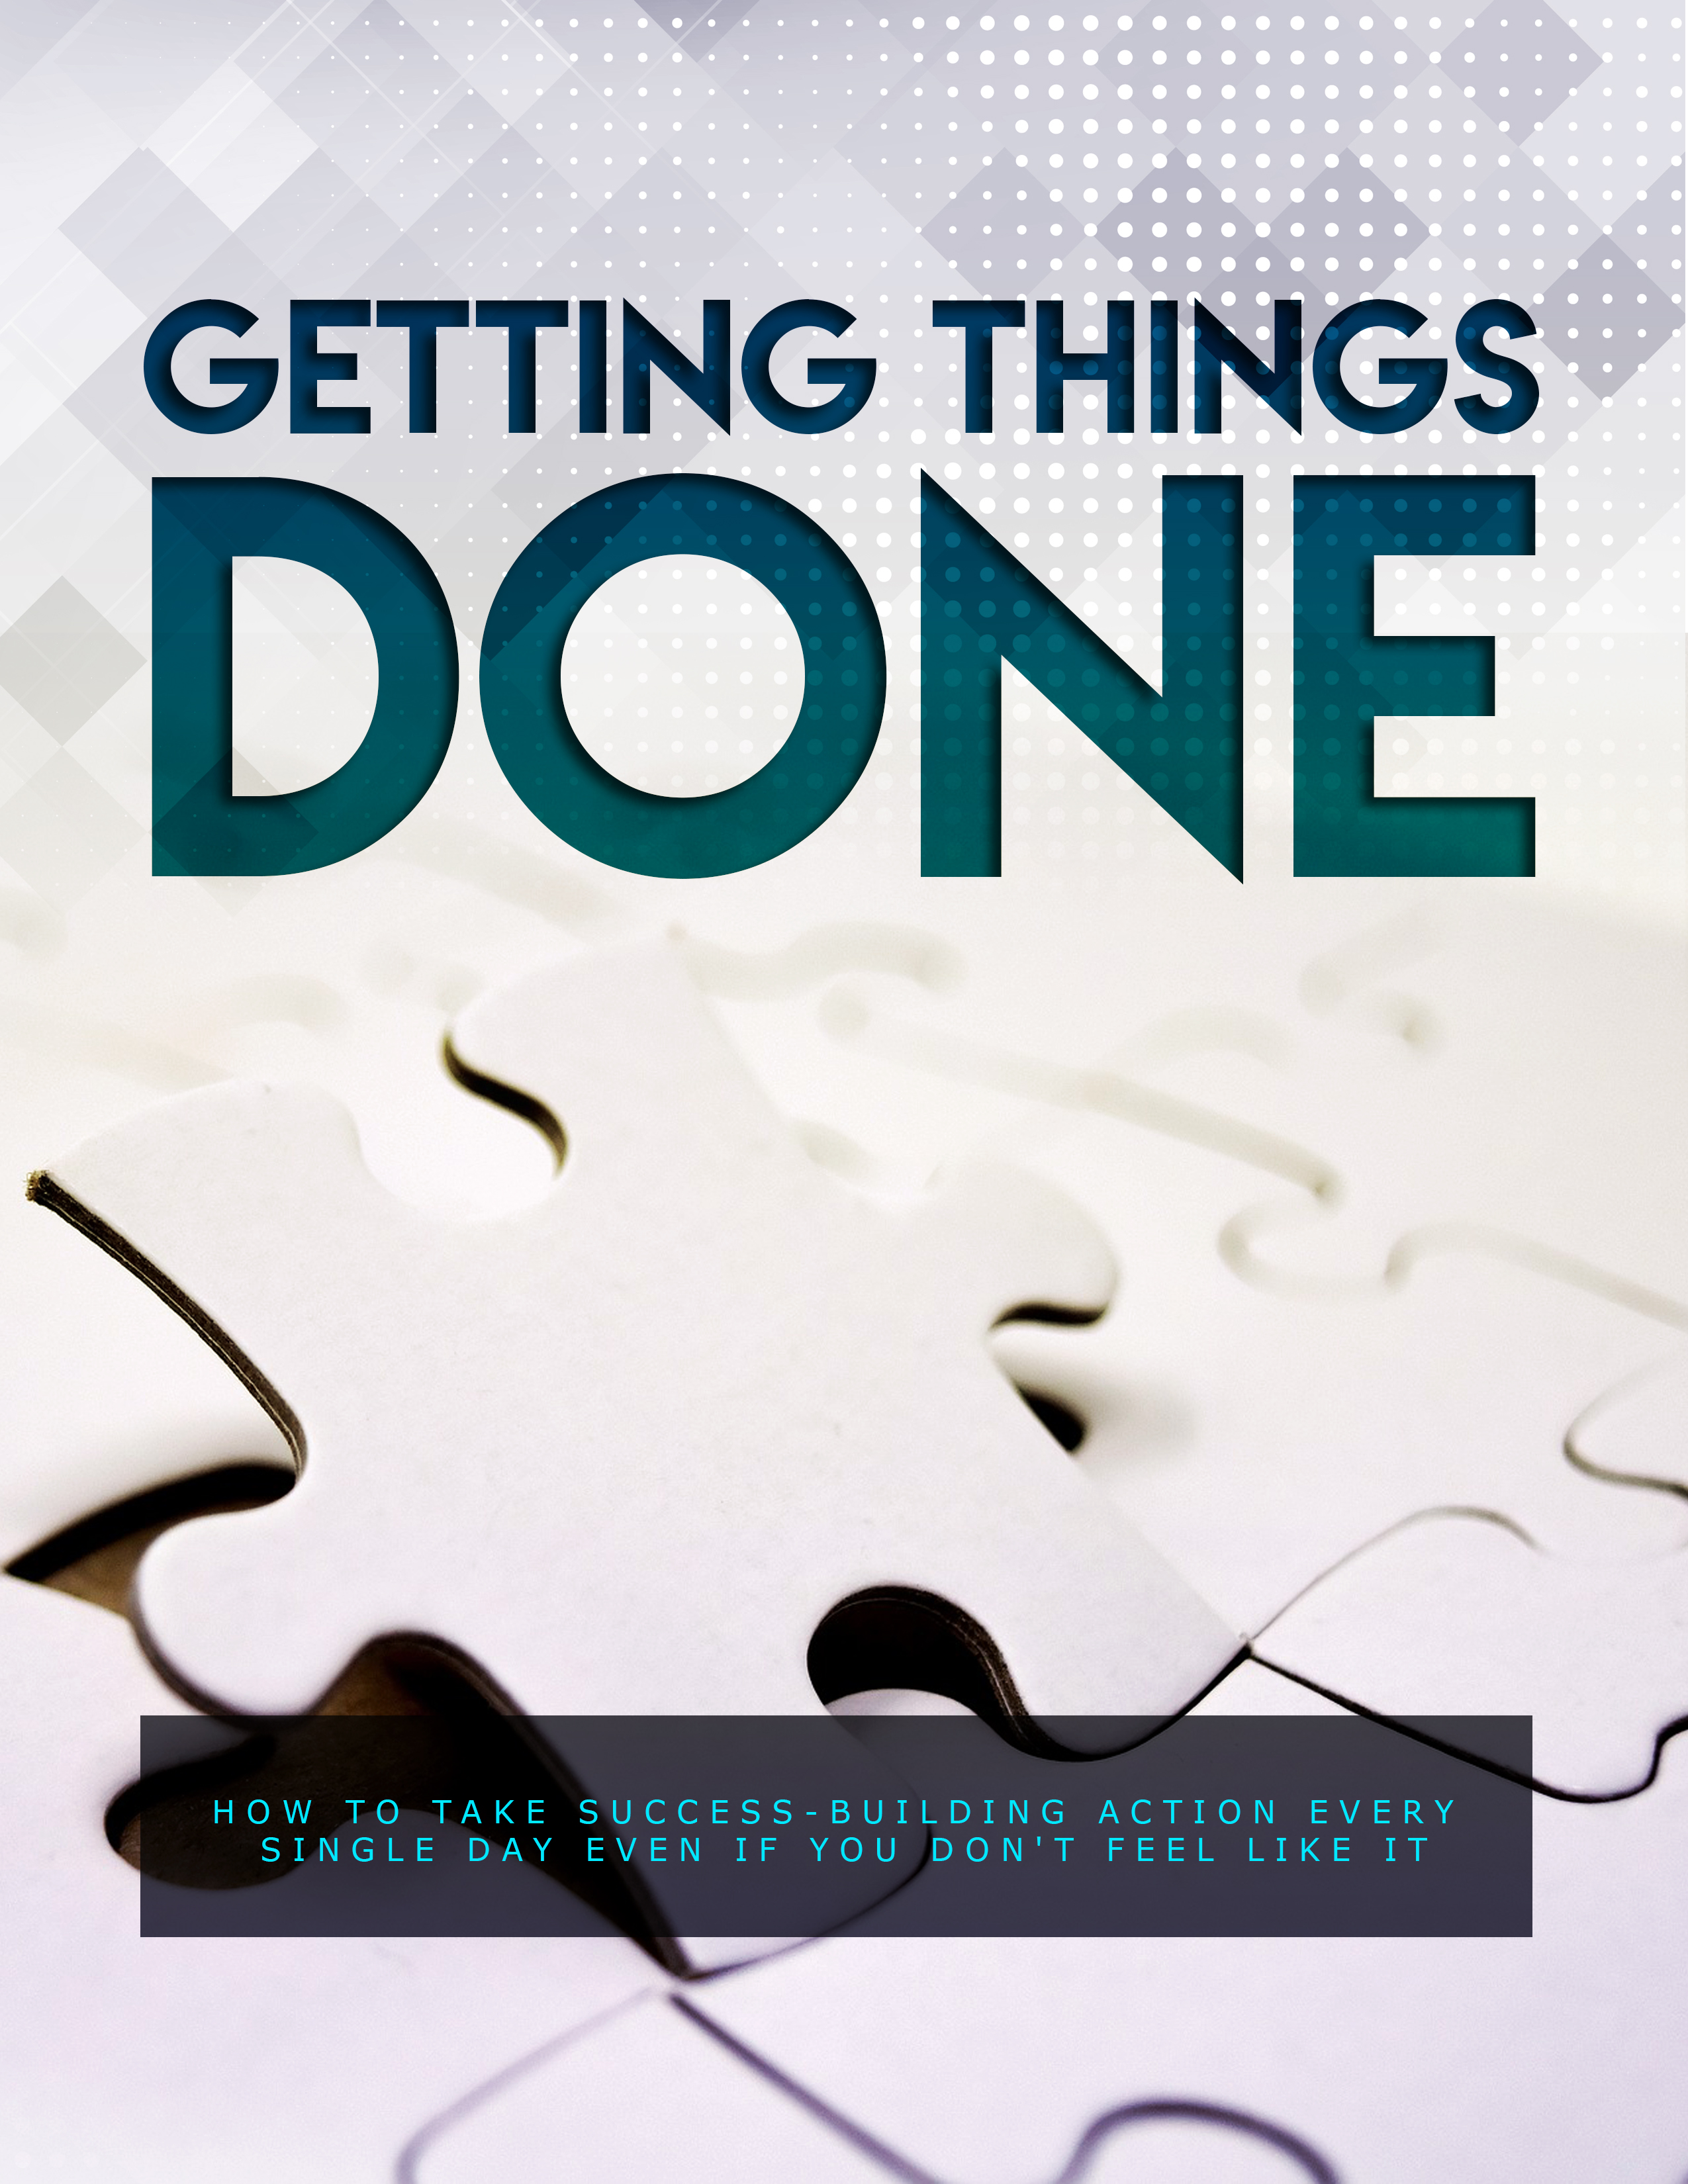 Getting Things Done (How To Take Success-Building Action Every Single Day Even If You Don't Feel Like It) Ebook's Ebook Image